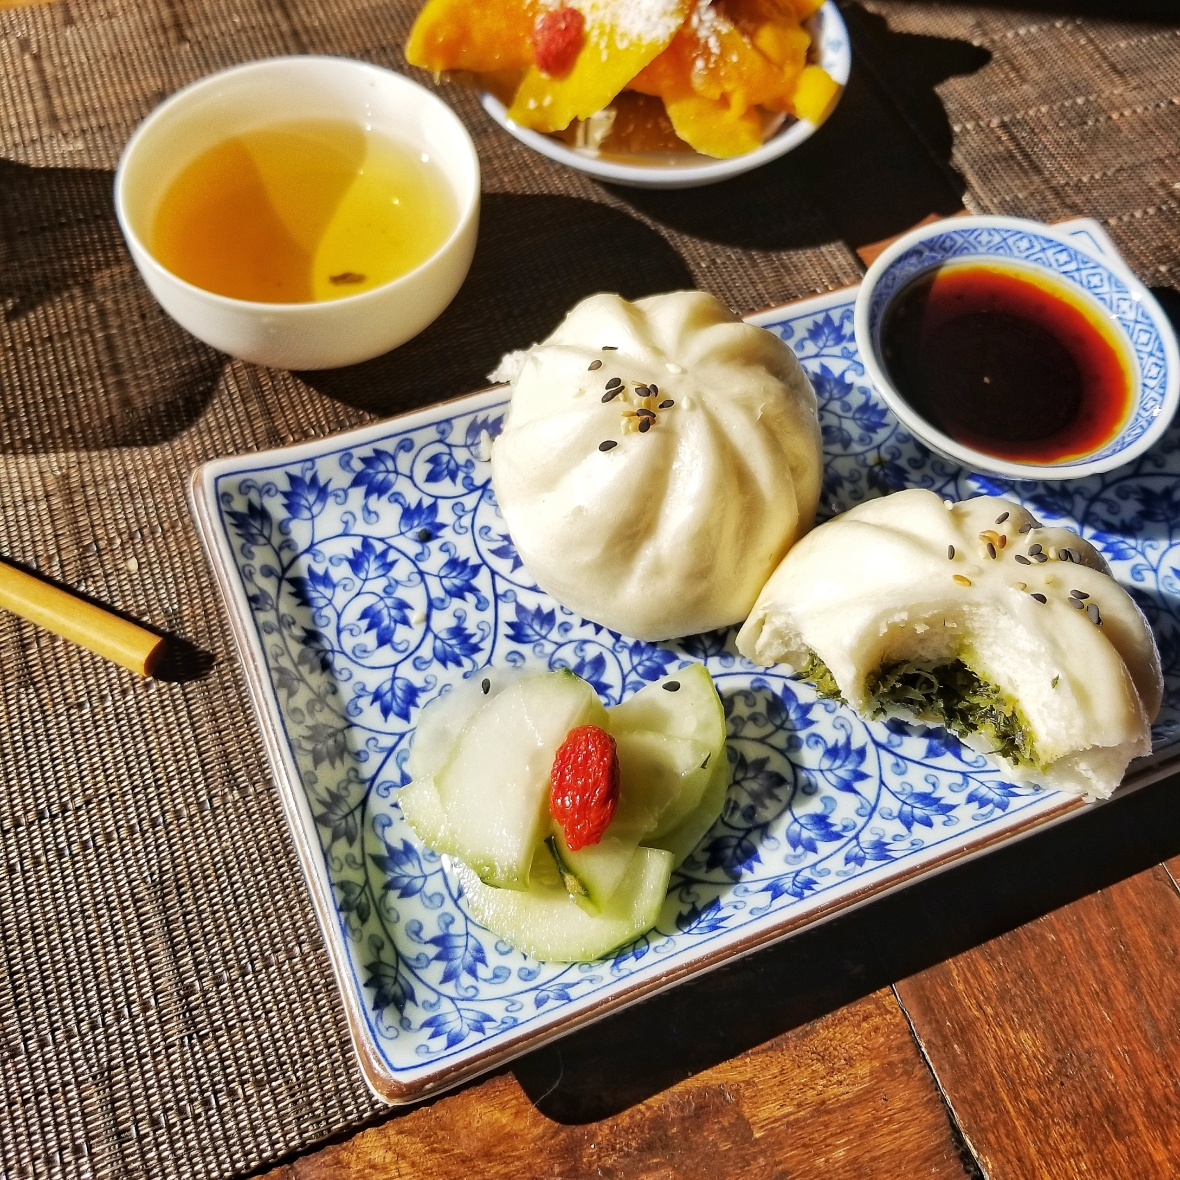 Lan Su - Steamed Buns and cucumber salad